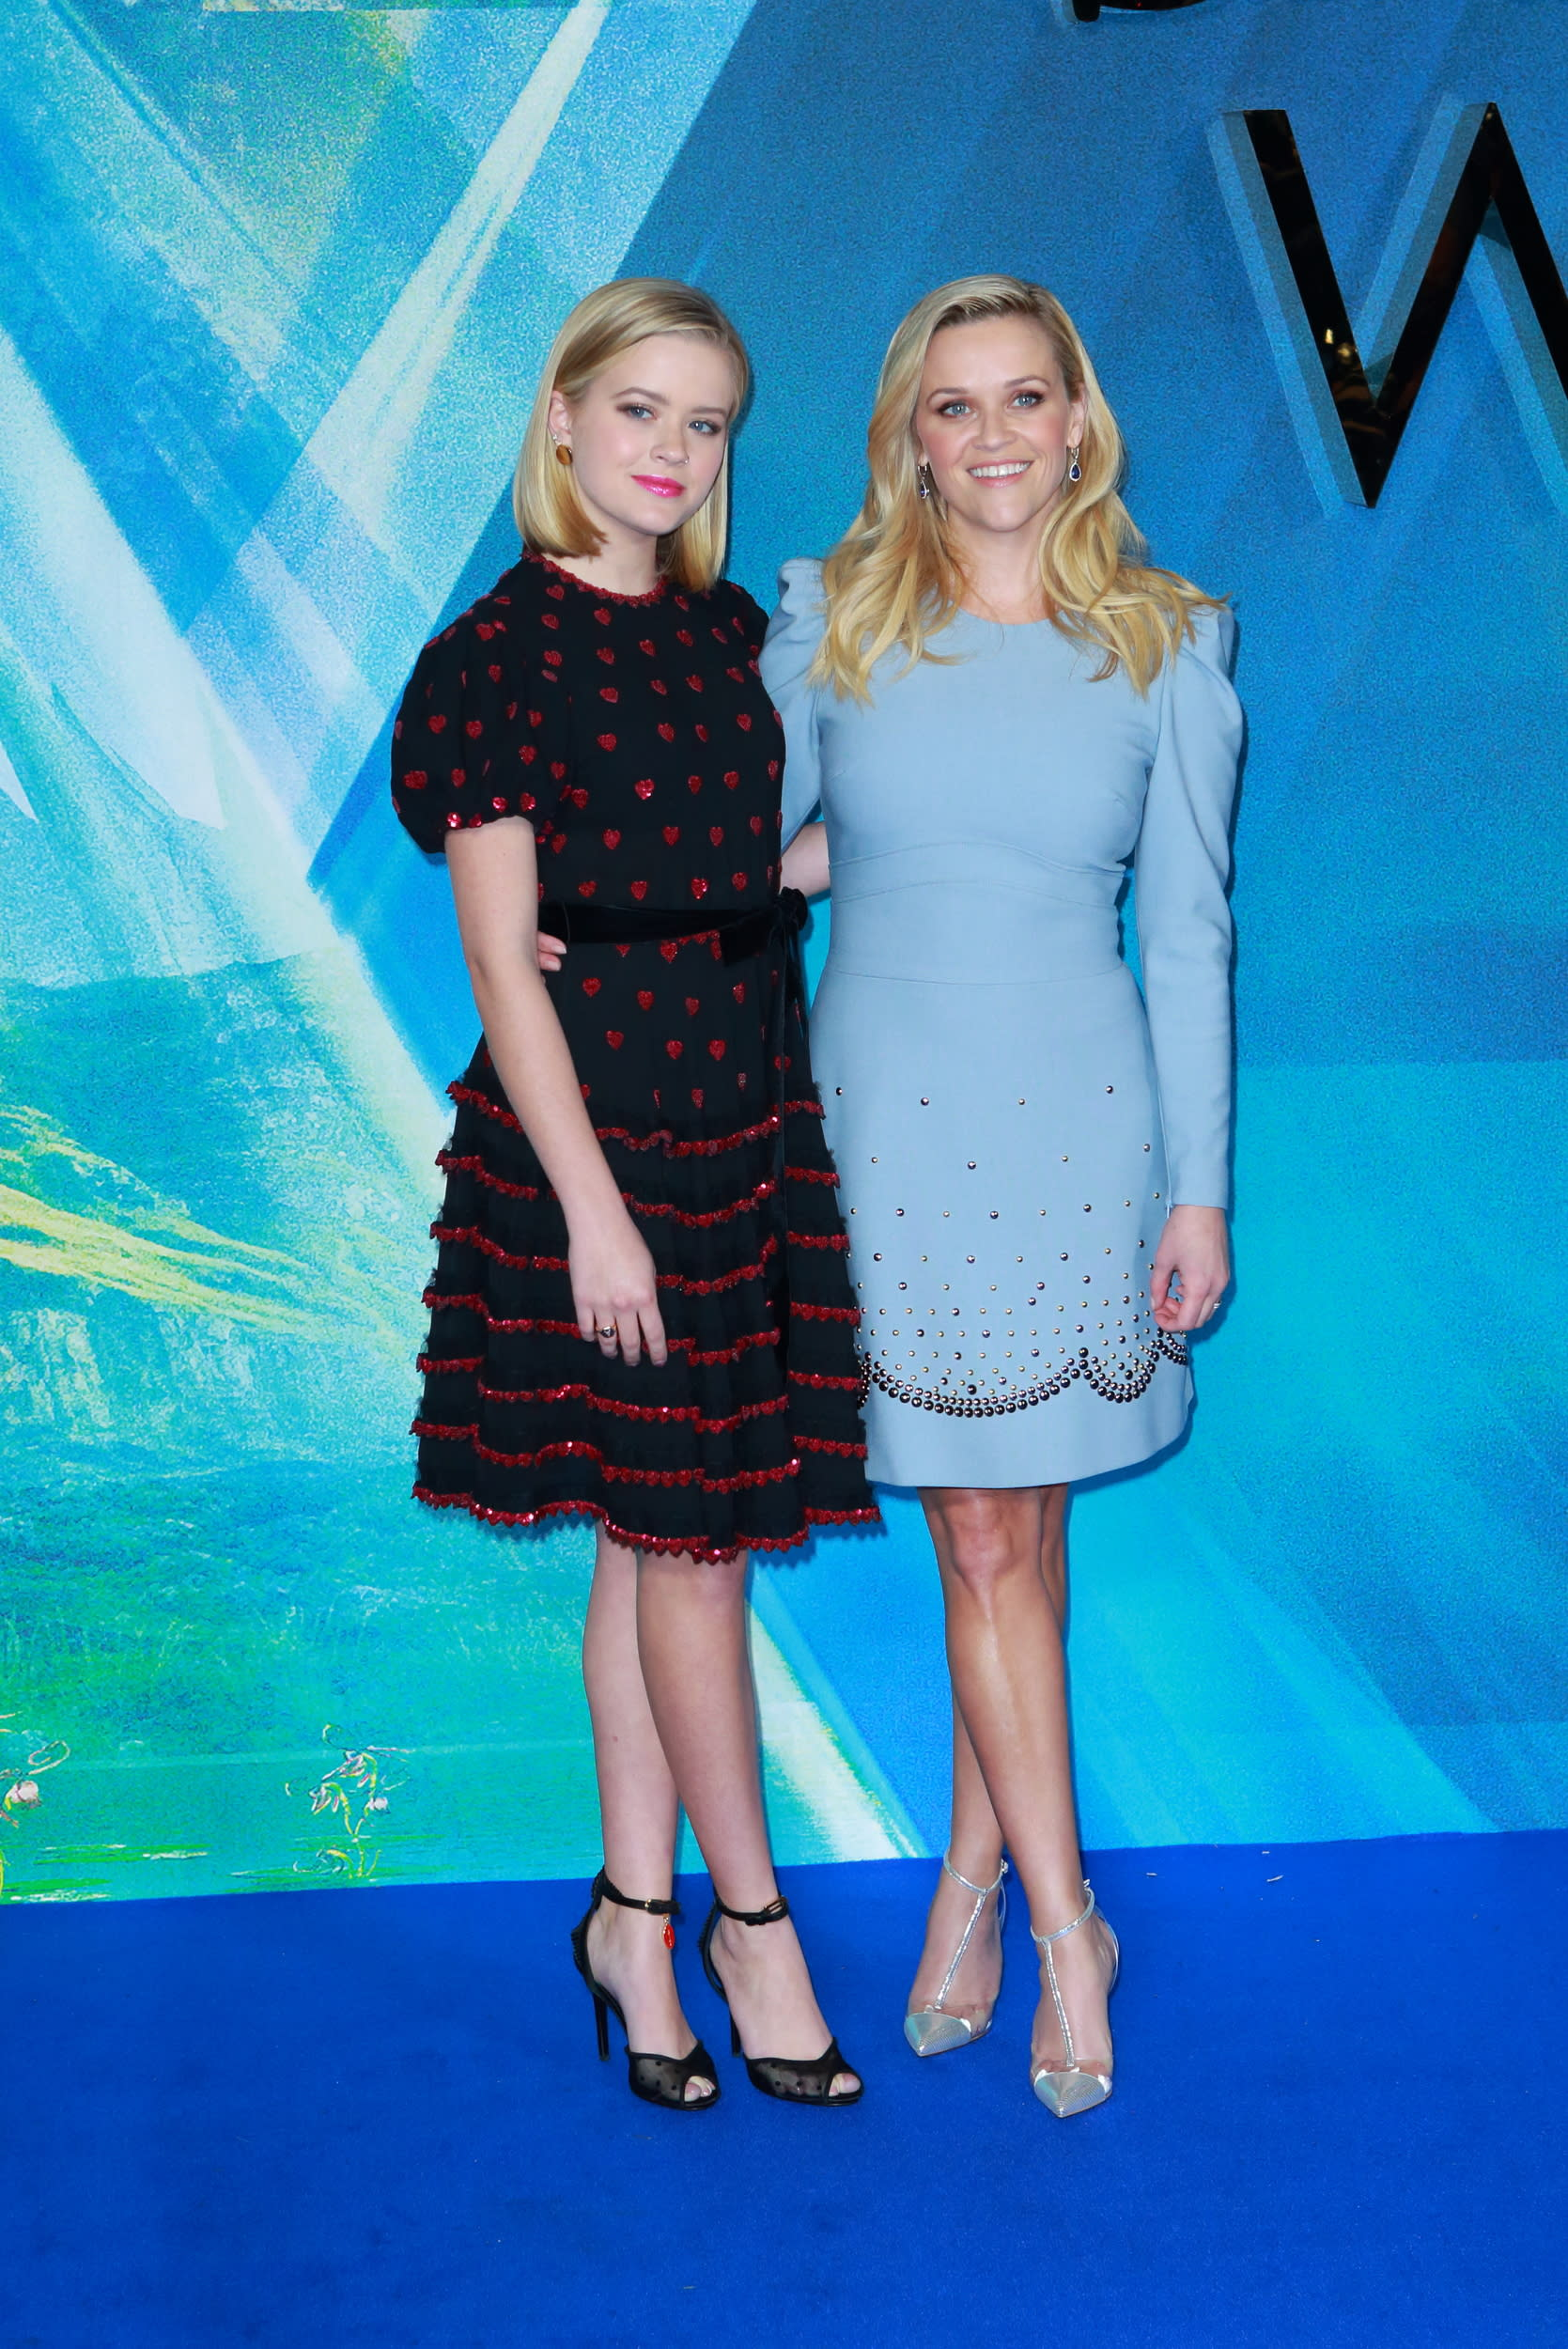 LONDON, UNITED KINGDOM - MARCH 13: Ava Phillippe and Reese Witherspoon attends the European Premiere of 'A Wrinkle In Time' at BFI IMAX on March 13, 2018 in London, England.   PHOTOGRAPH BY Jamy / Barcroft Images (Photo credit should read Jamy / Barcroft Media via Getty Images)